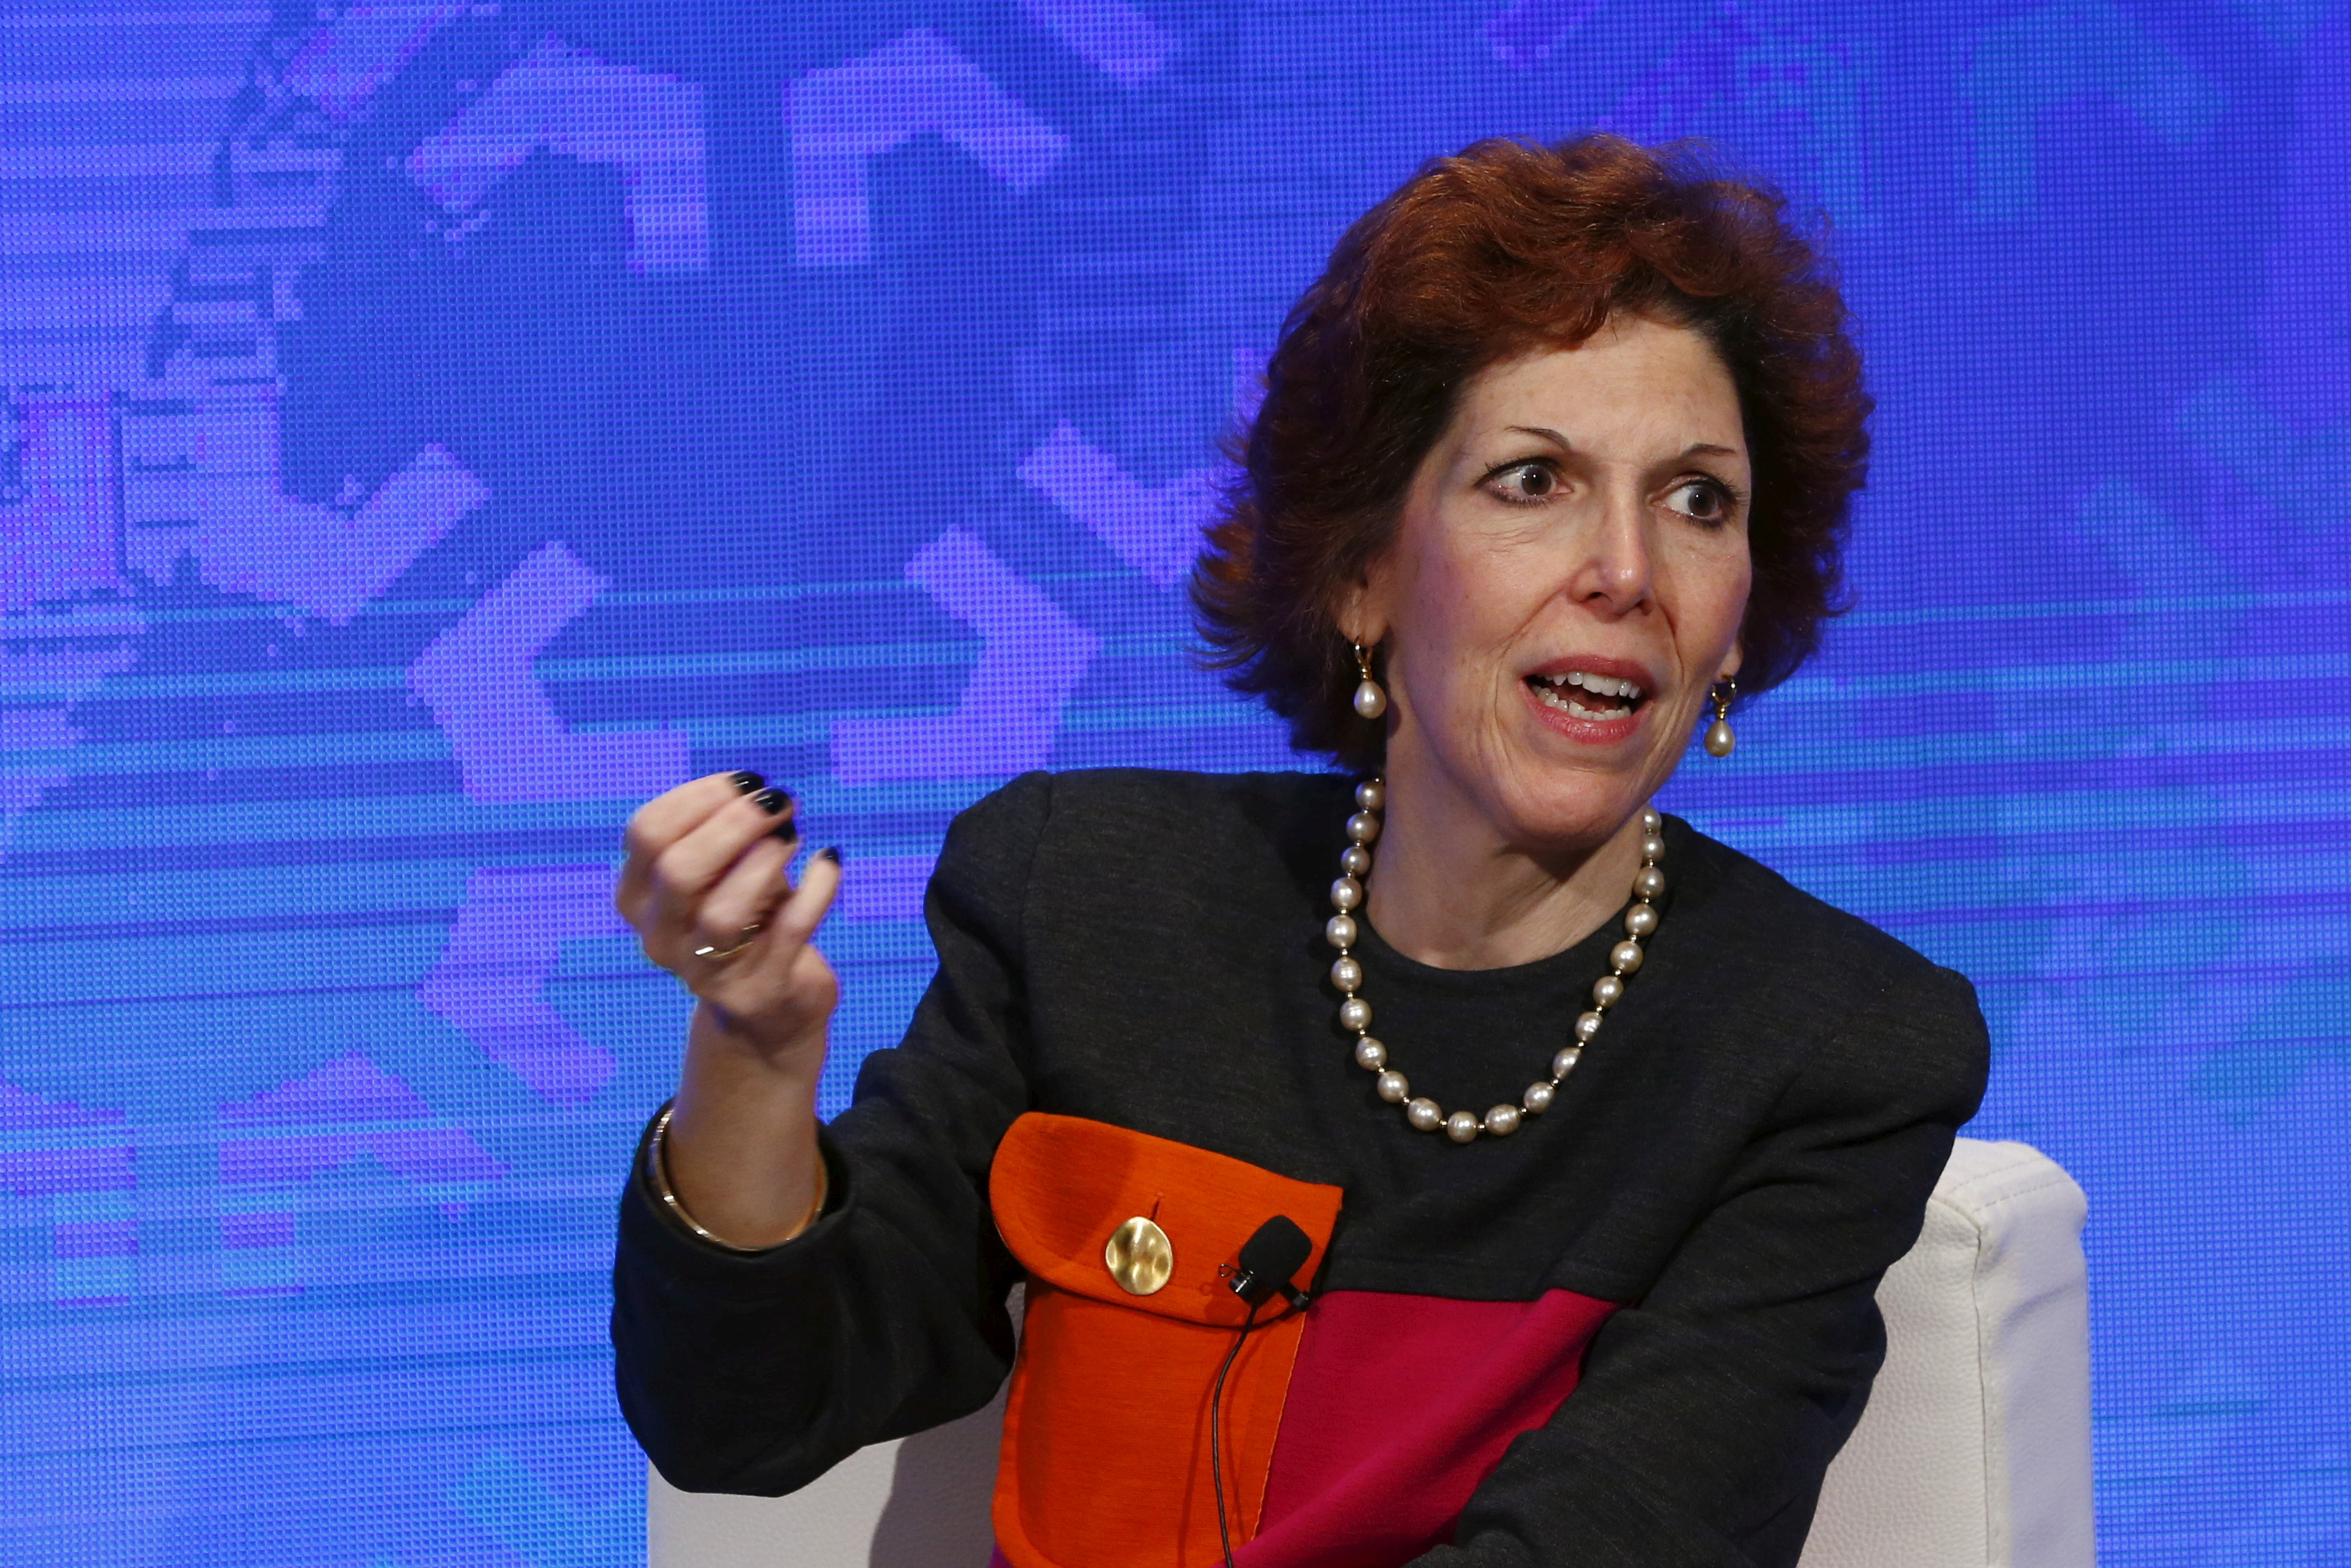 Cleveland Fed President Loretta Mester takes part in a panel convened to speak about the health of the U.S. economy in New York November 18, 2015. REUTERS/Lucas Jackson/File Photo